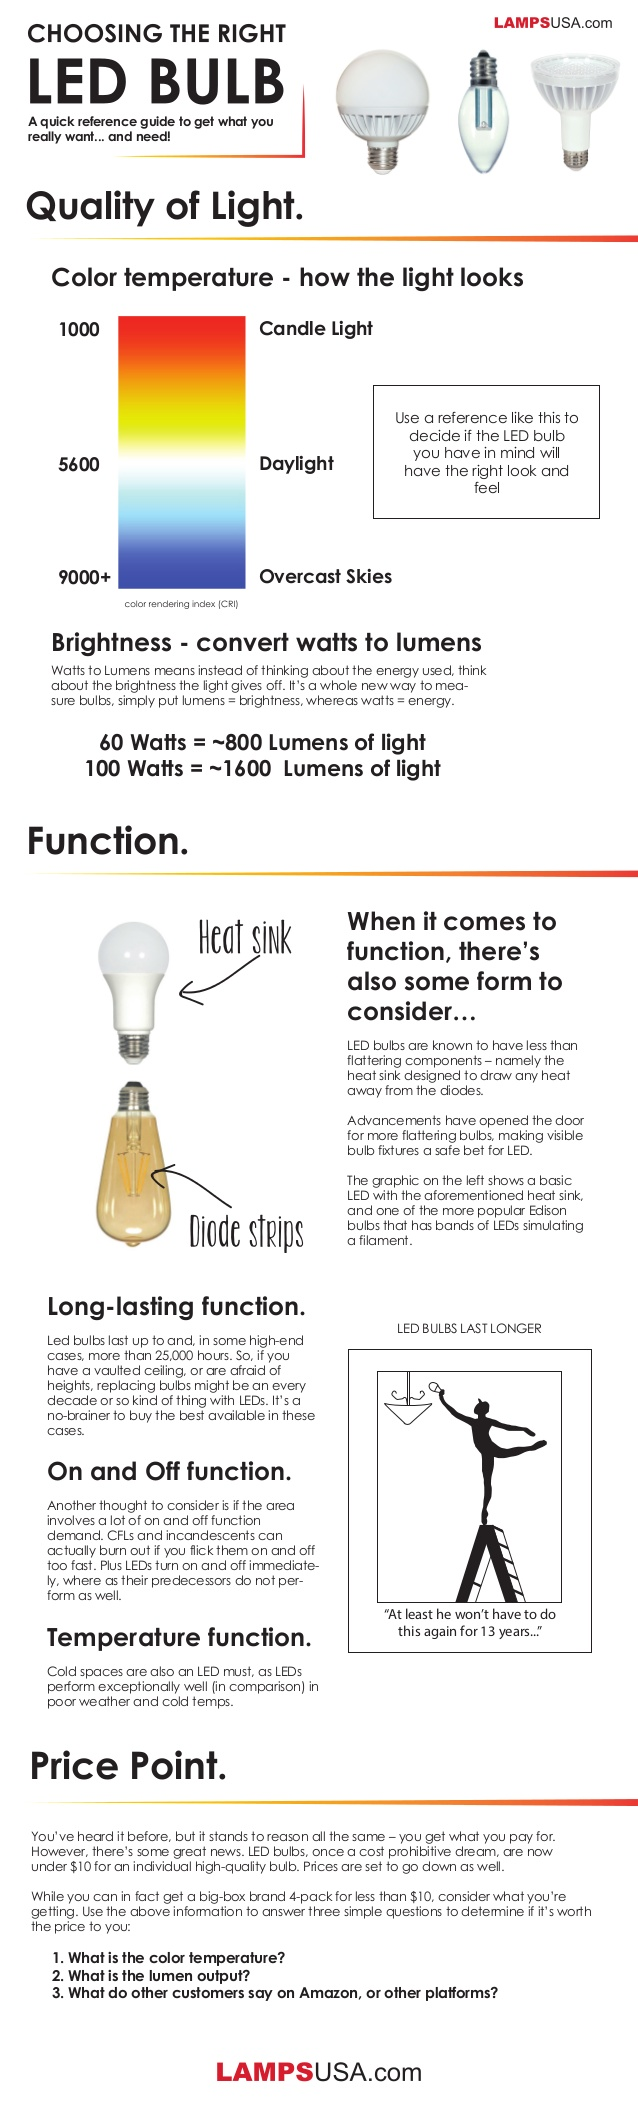 40 Benefits Advantages Of Switching To Led Lighting Unique Fun Led Energy Efficient Lighting Incandescent Lighting